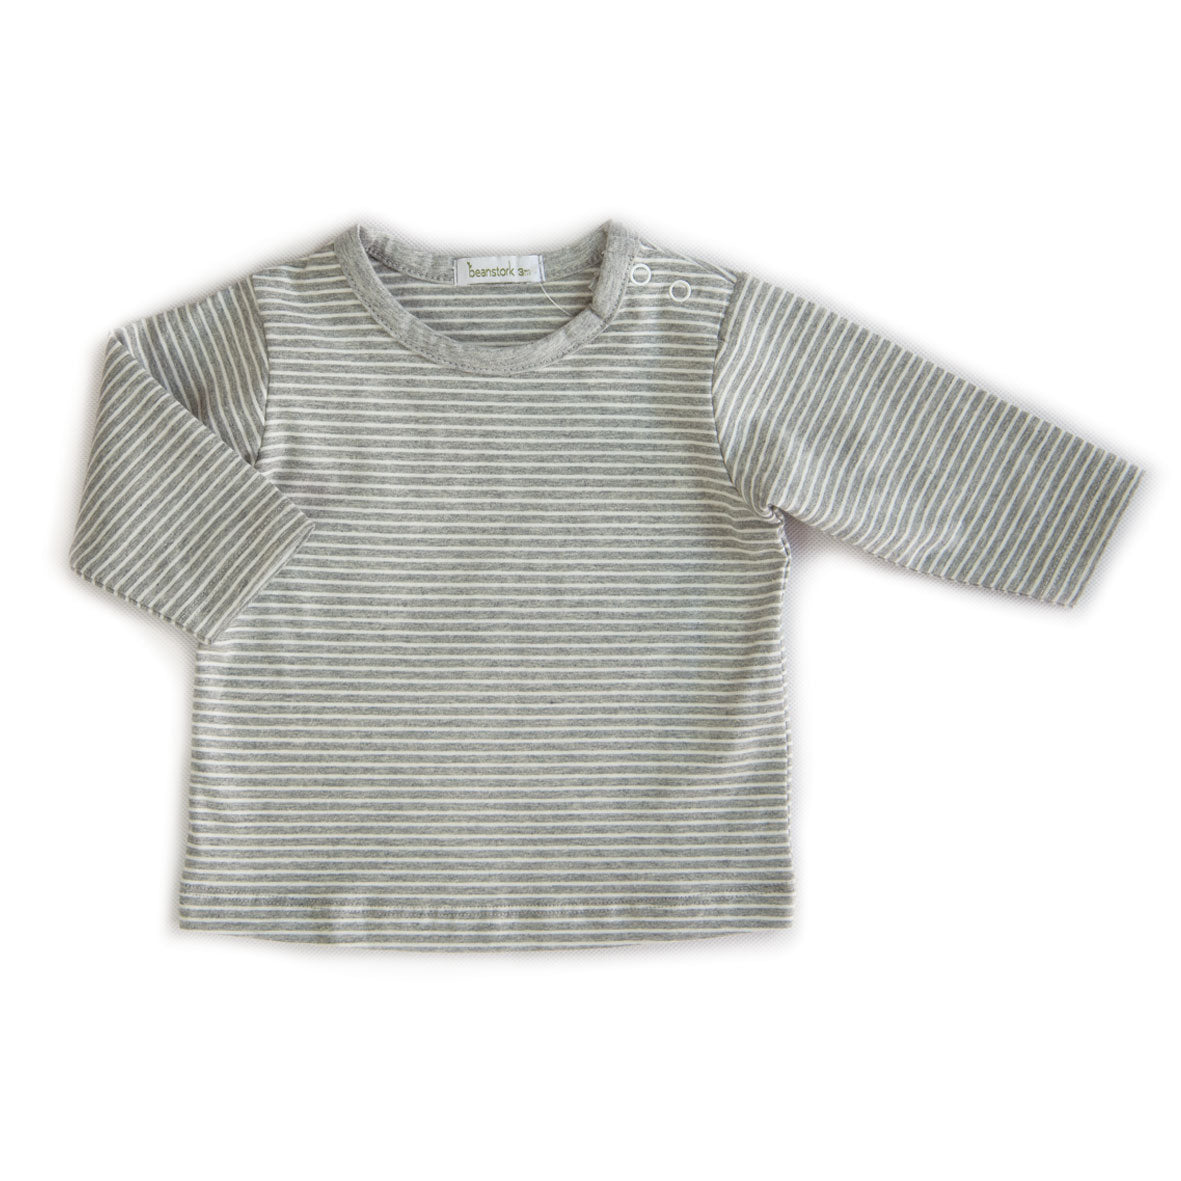 BEANSTORK - Grey Stripe Tee